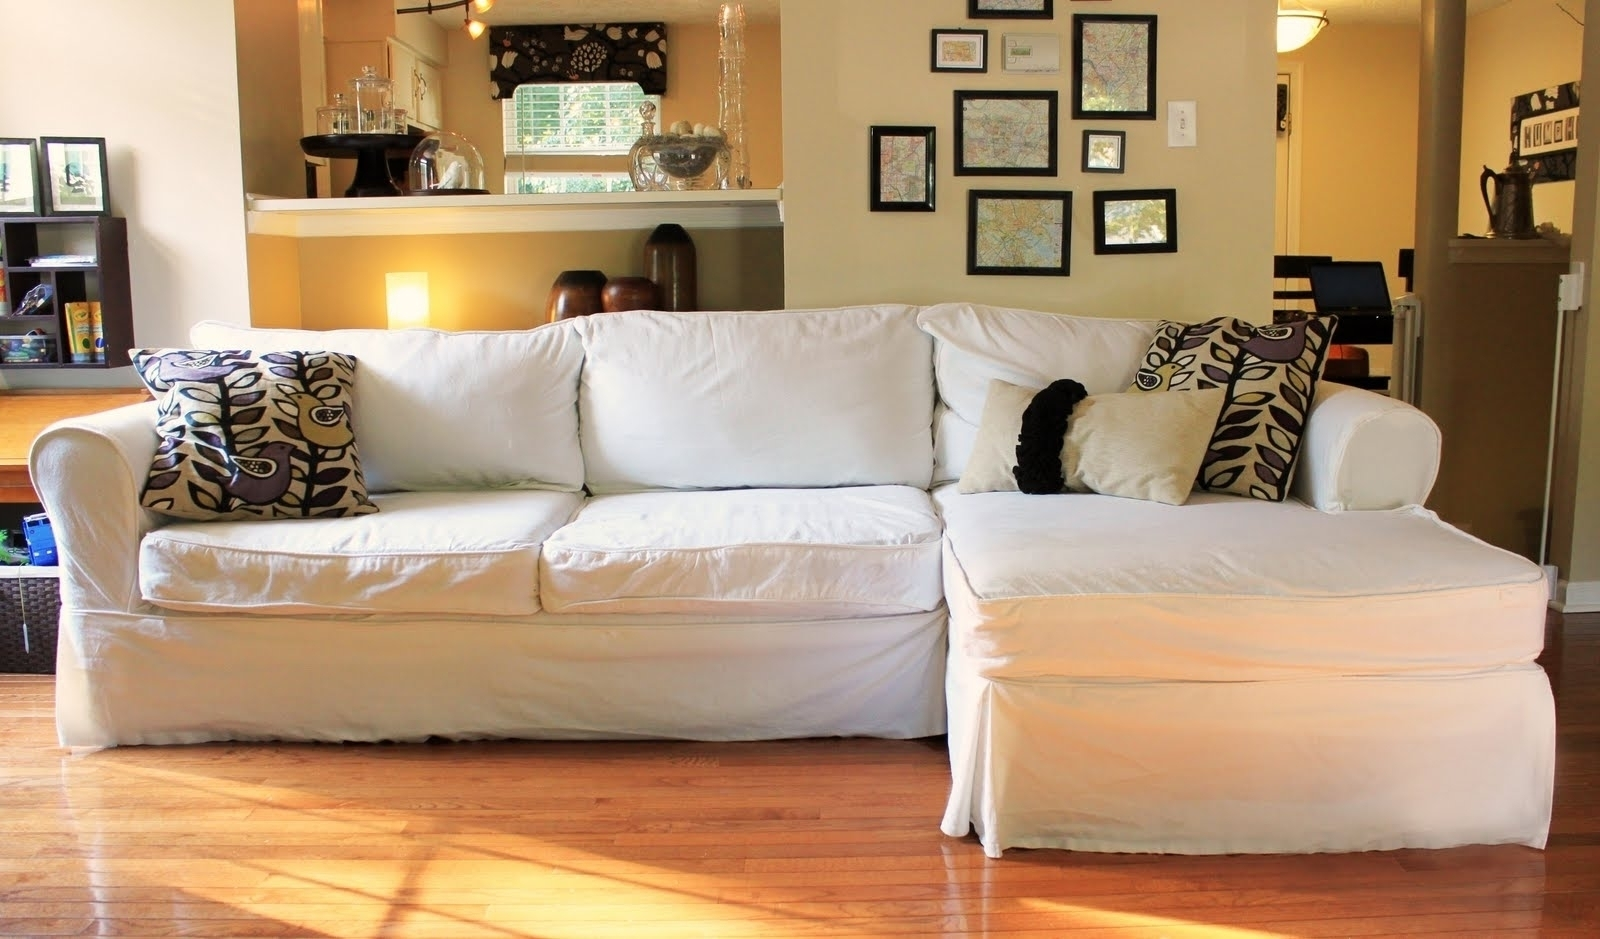 Pottery Barn Small Sectional Sofa • Sectional Sofa Intended For Pottery Barn Sectional Sofas (Image 9 of 10)